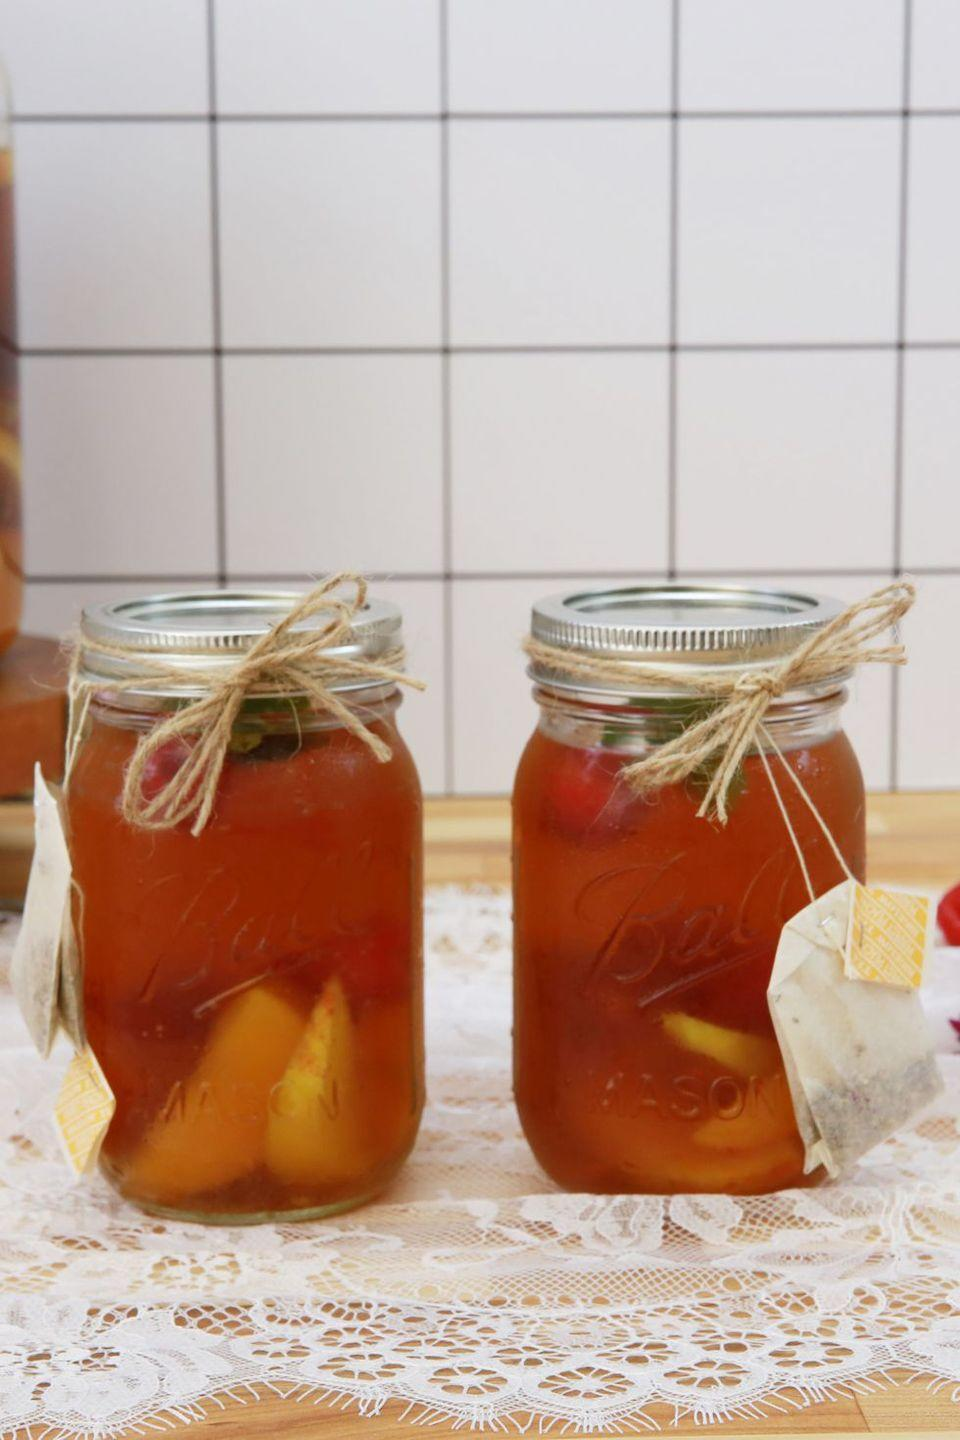 """<p>It's not exactly the sweet tea your grandma will remember. It's better a.k.a. boozier. </p><p><em><a href=""""https://www.countryliving.com/food-drinks/recipes/a43403/sweet-tea-sangria-recipe/"""" rel=""""nofollow noopener"""" target=""""_blank"""" data-ylk=""""slk:Get the recipe from Country Living »"""" class=""""link rapid-noclick-resp"""">Get the recipe from Country Living »</a></em></p>"""